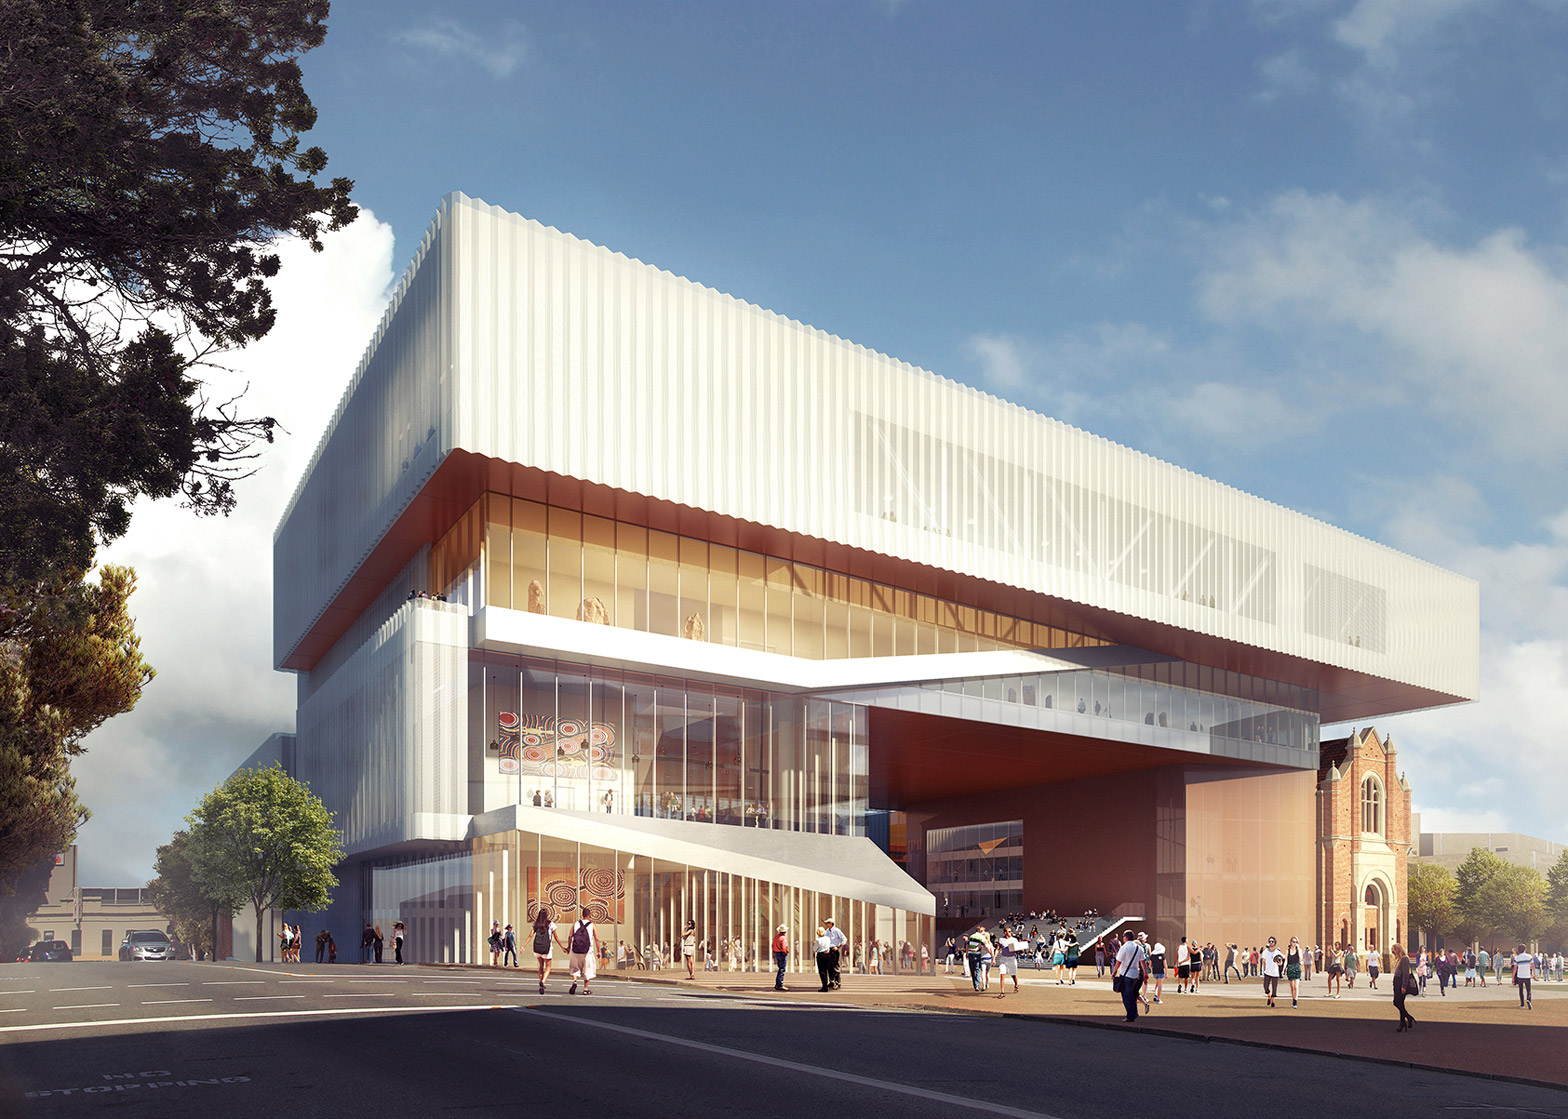 Oma and hassell design new museum for western australia for Australian architecture